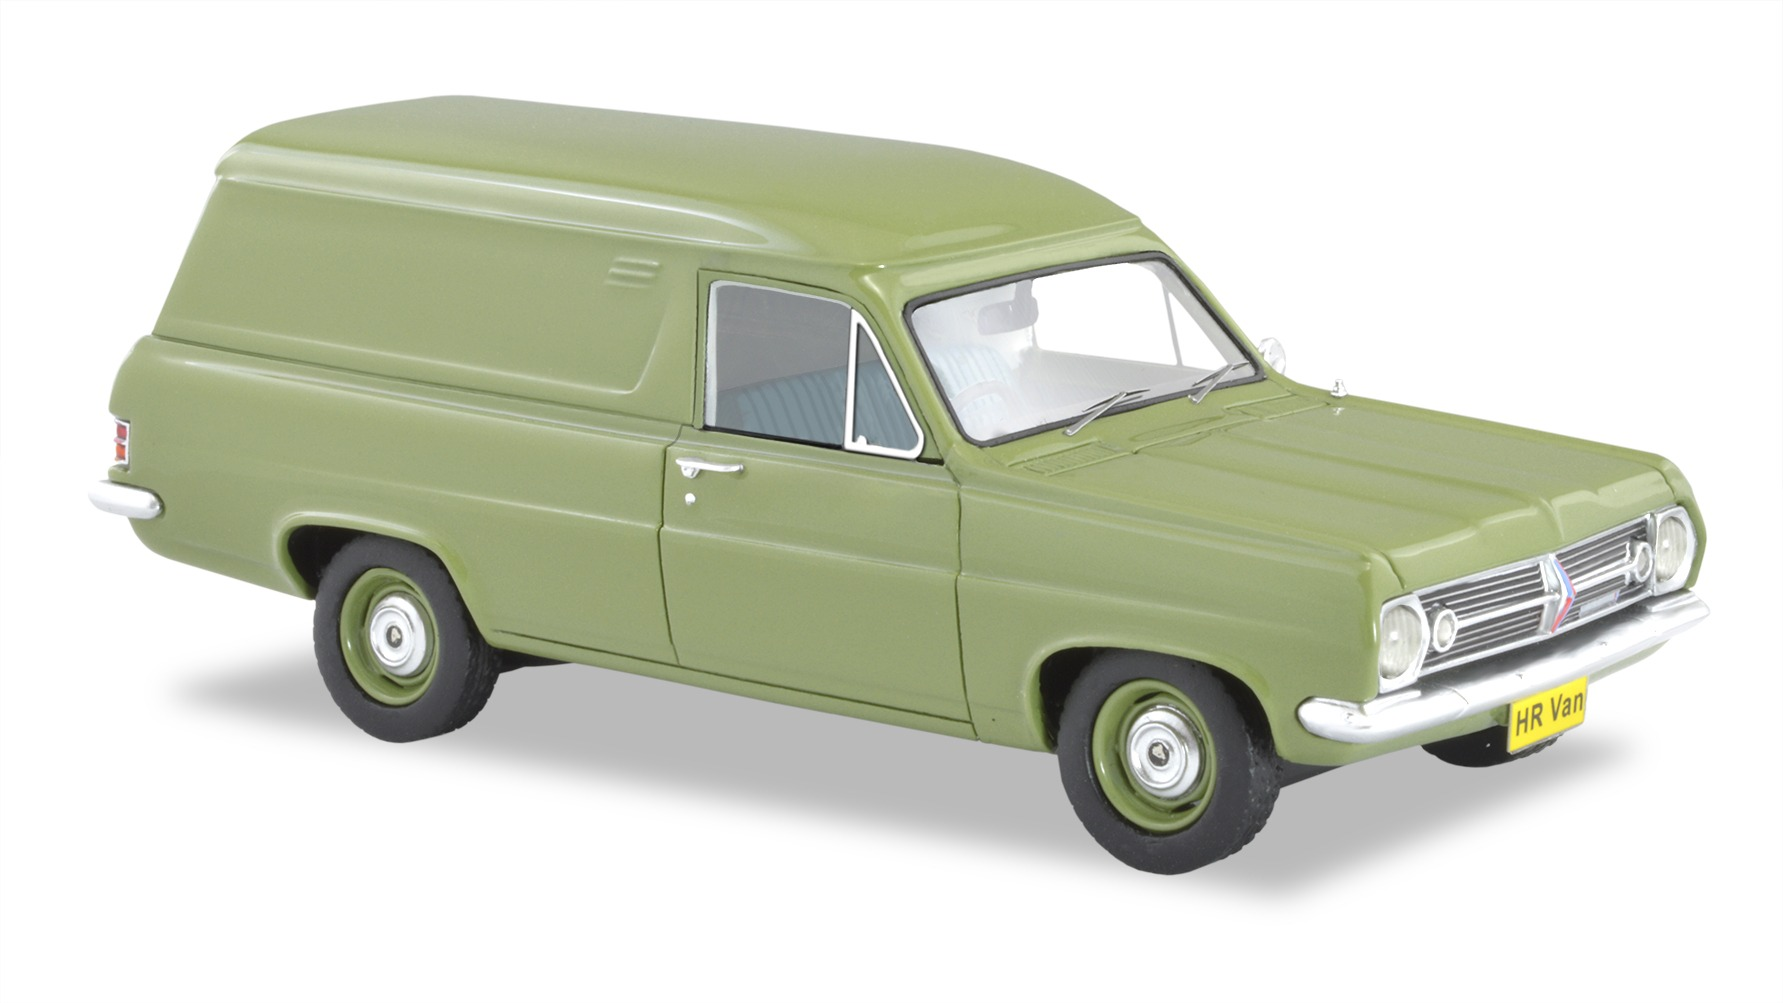 1966-1968 HR Panel Van – Finisterre Green